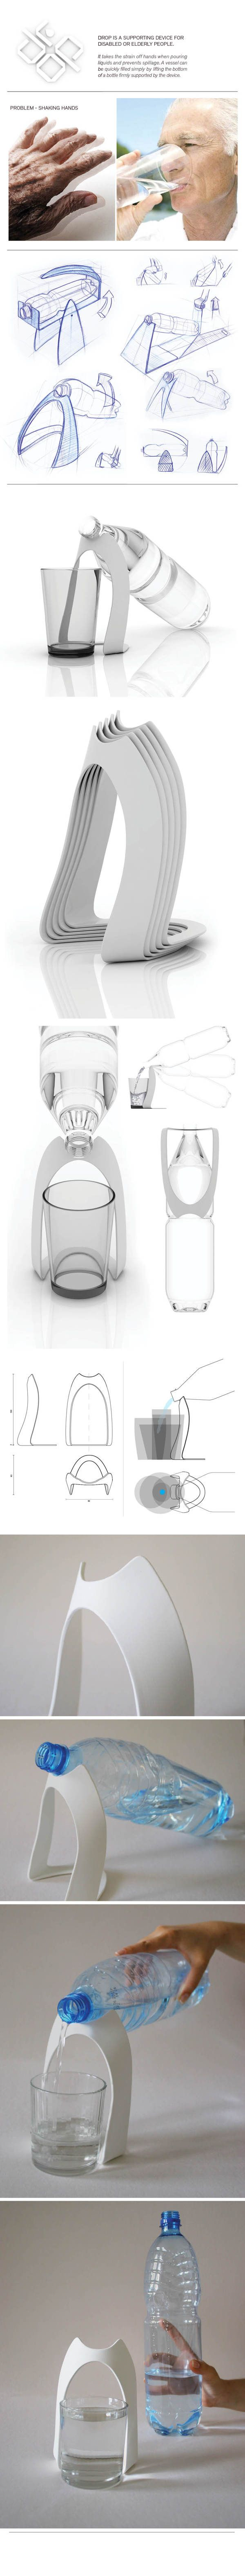 54 Best Human Centered Consumer Experience Design Images On Dc Motor Schematic Electriccurtains Pixnet Drop A Supporting Device For Disabled People Behance